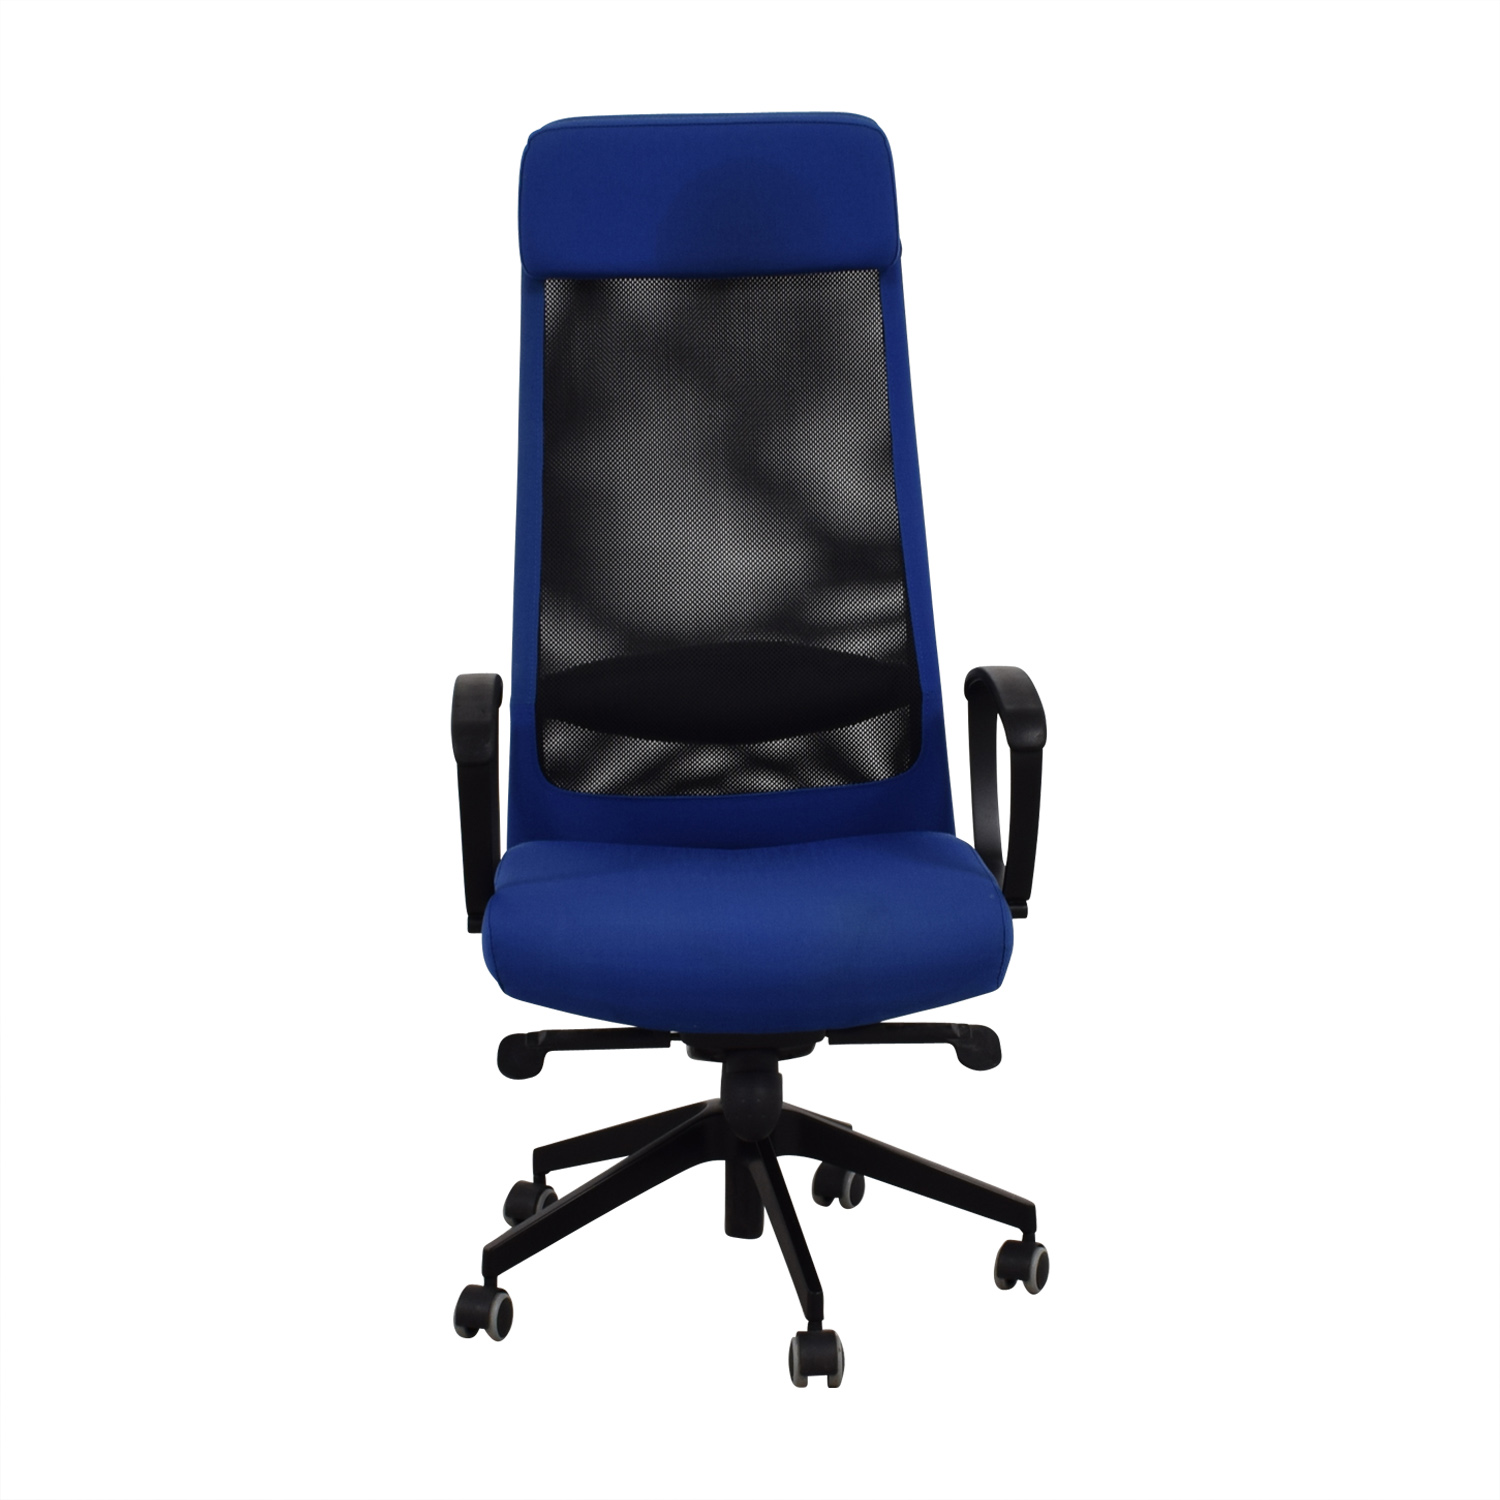 IKEA IKEA Markus Blue Swivel Chair used